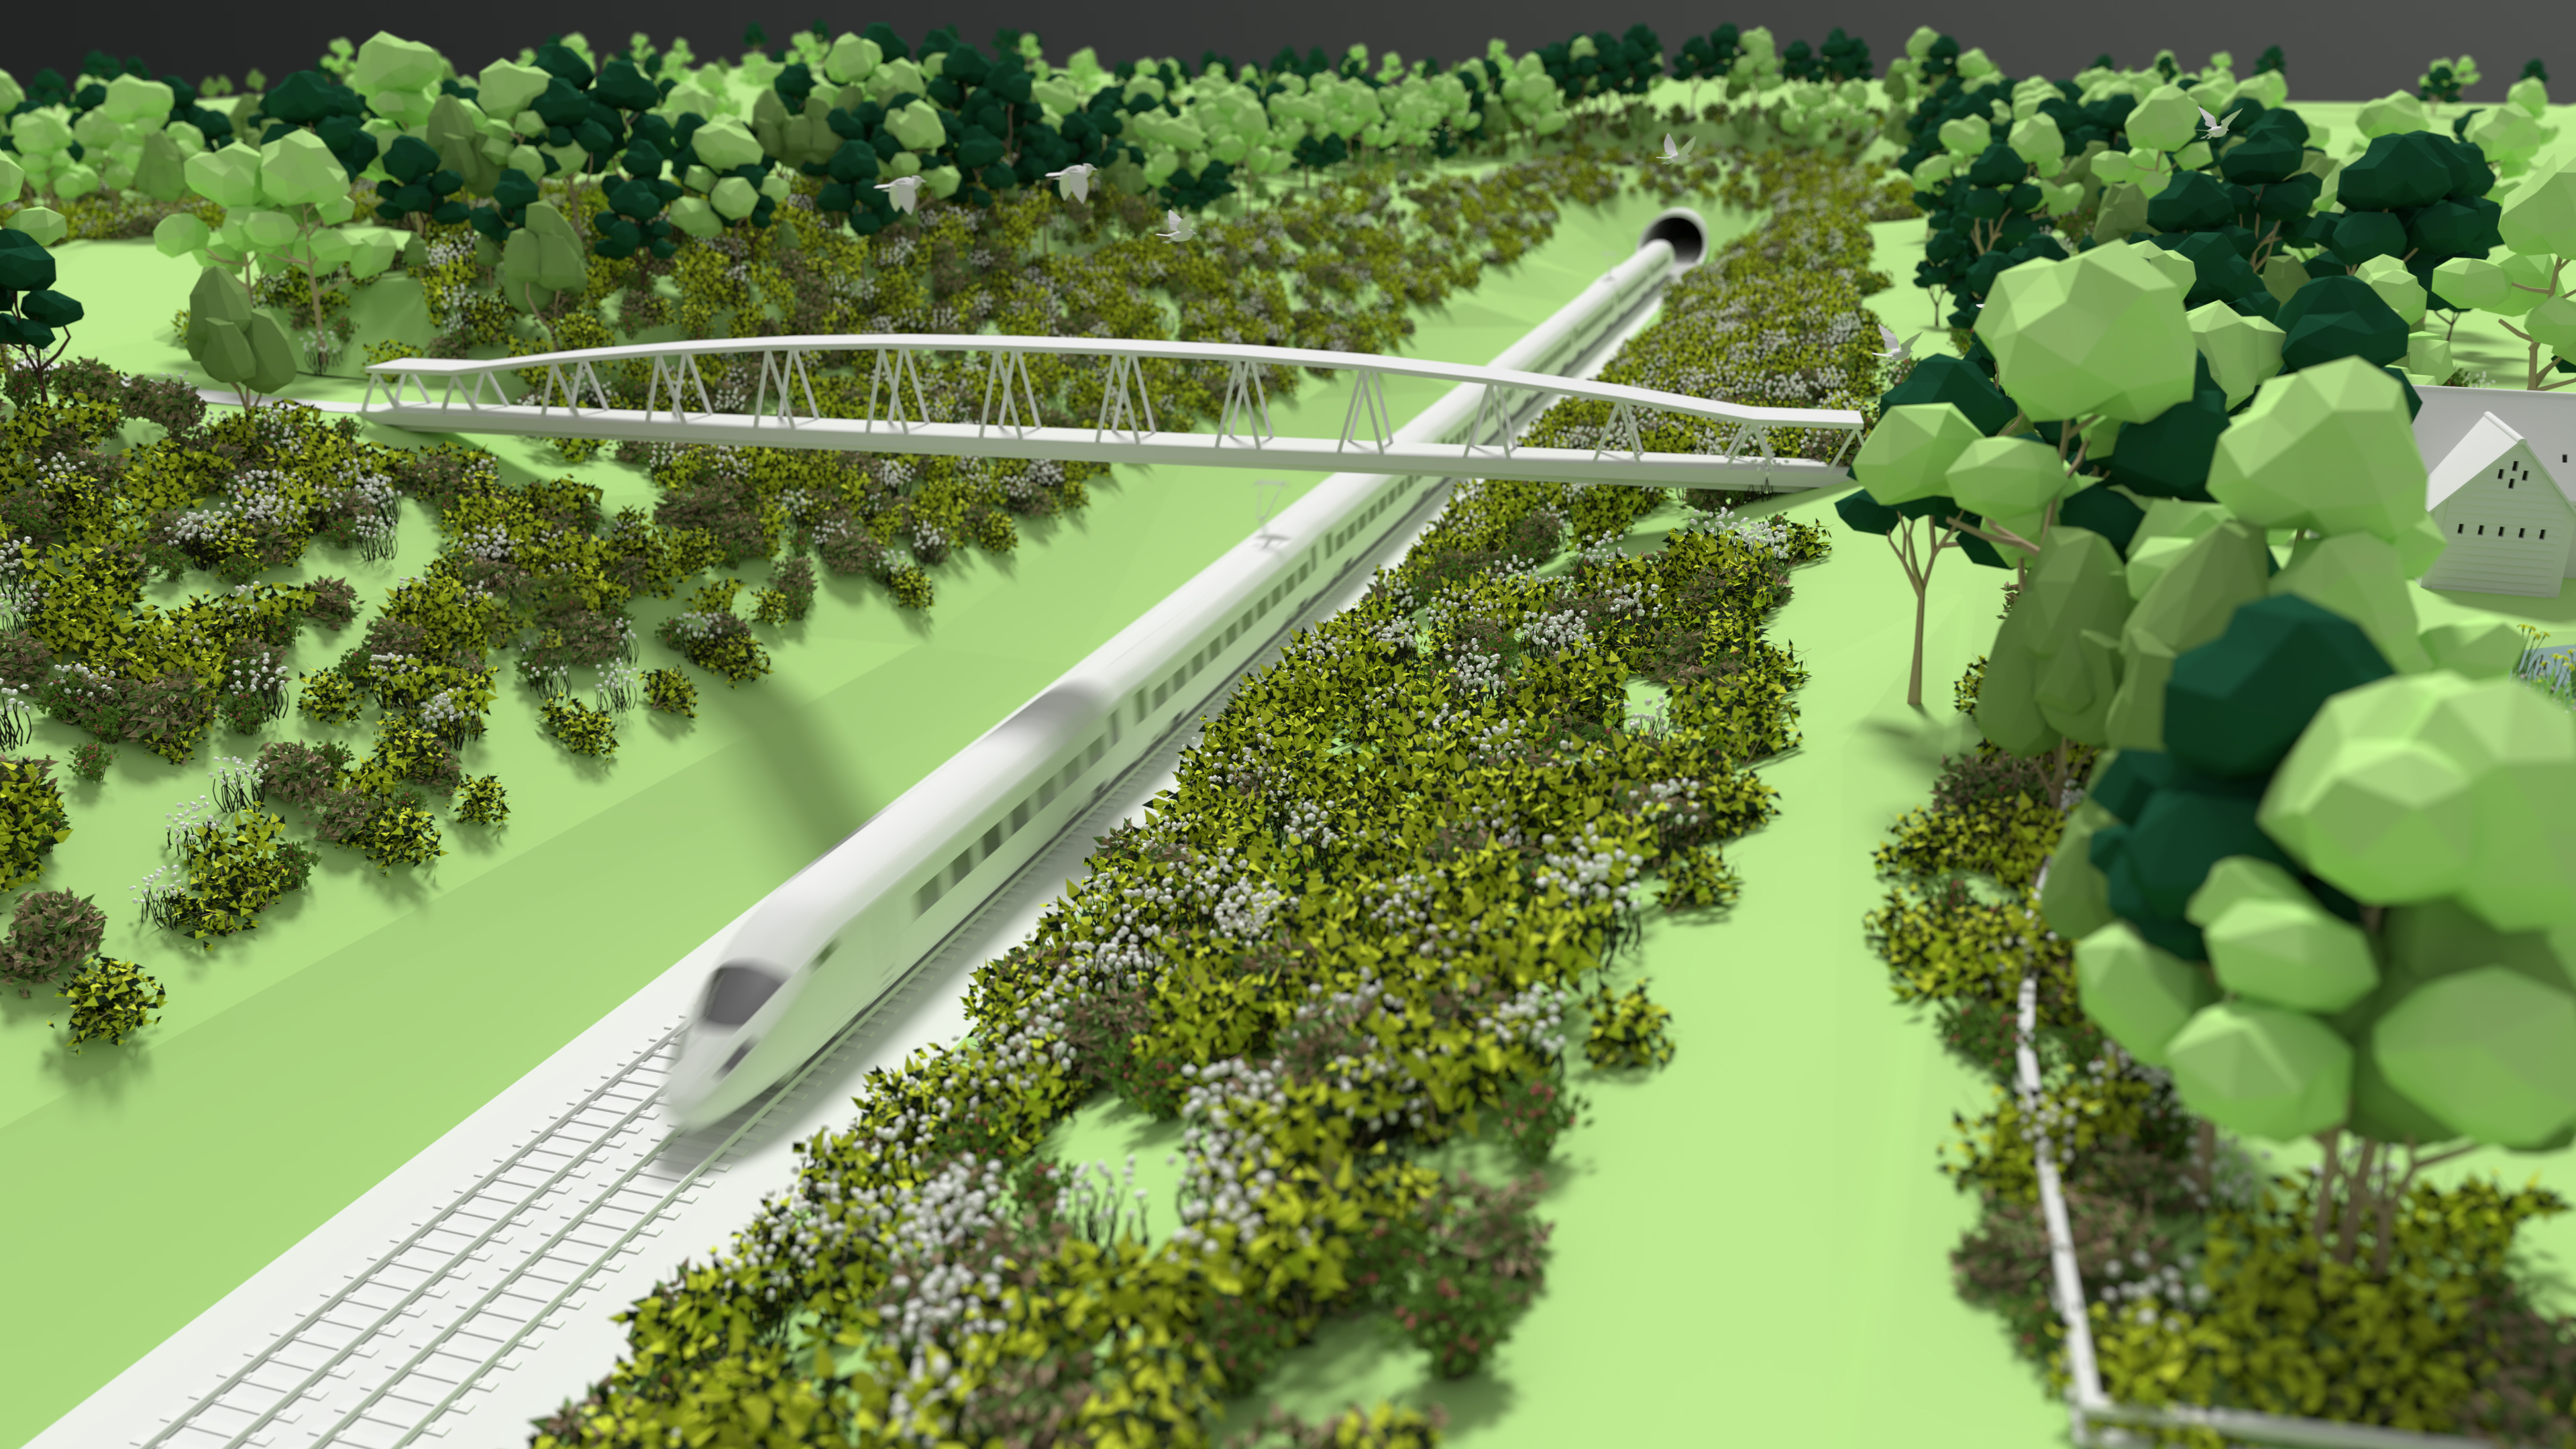 HS2 Ltd green corridor animation